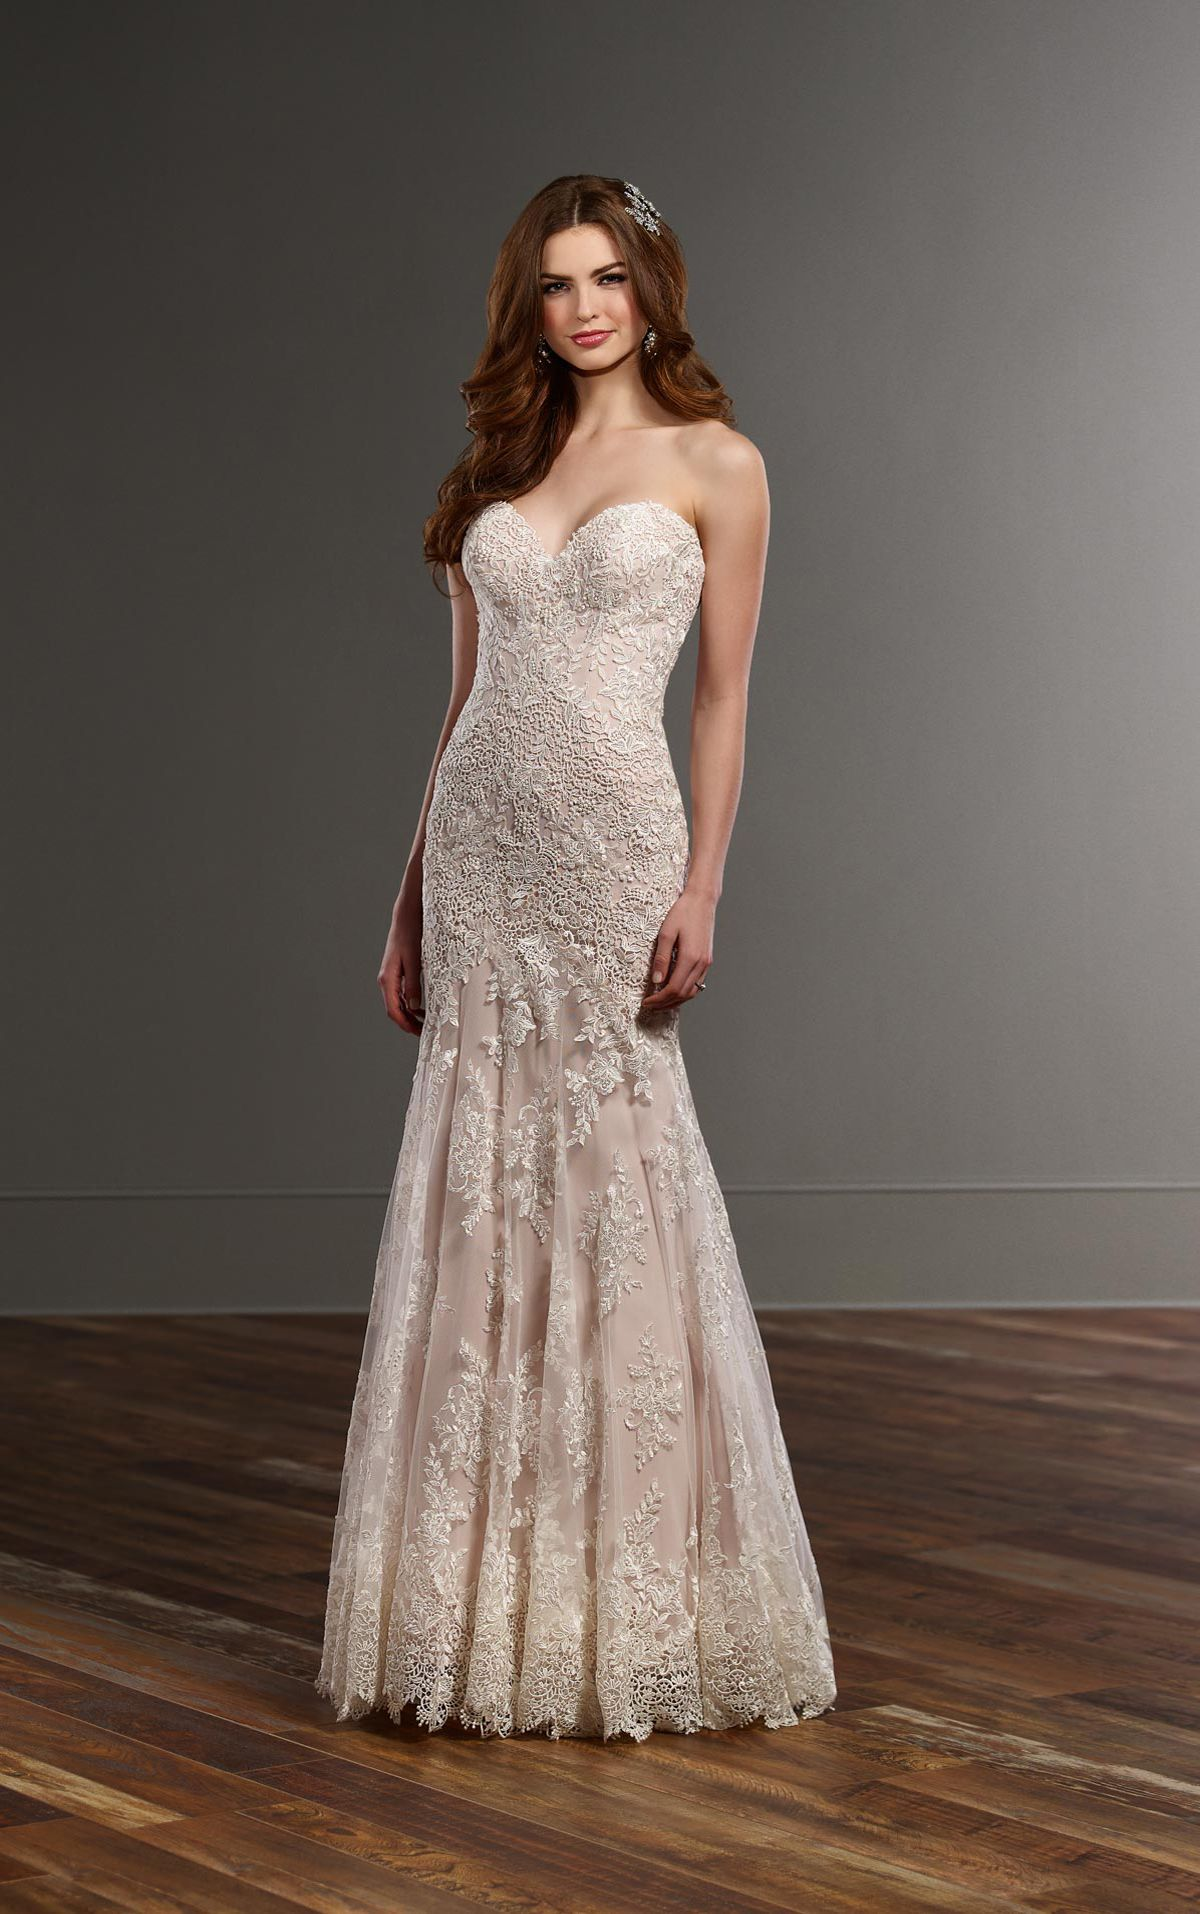 Bodice wedding dress  Fit and flare wedding dress with strapless sweetheart bodice